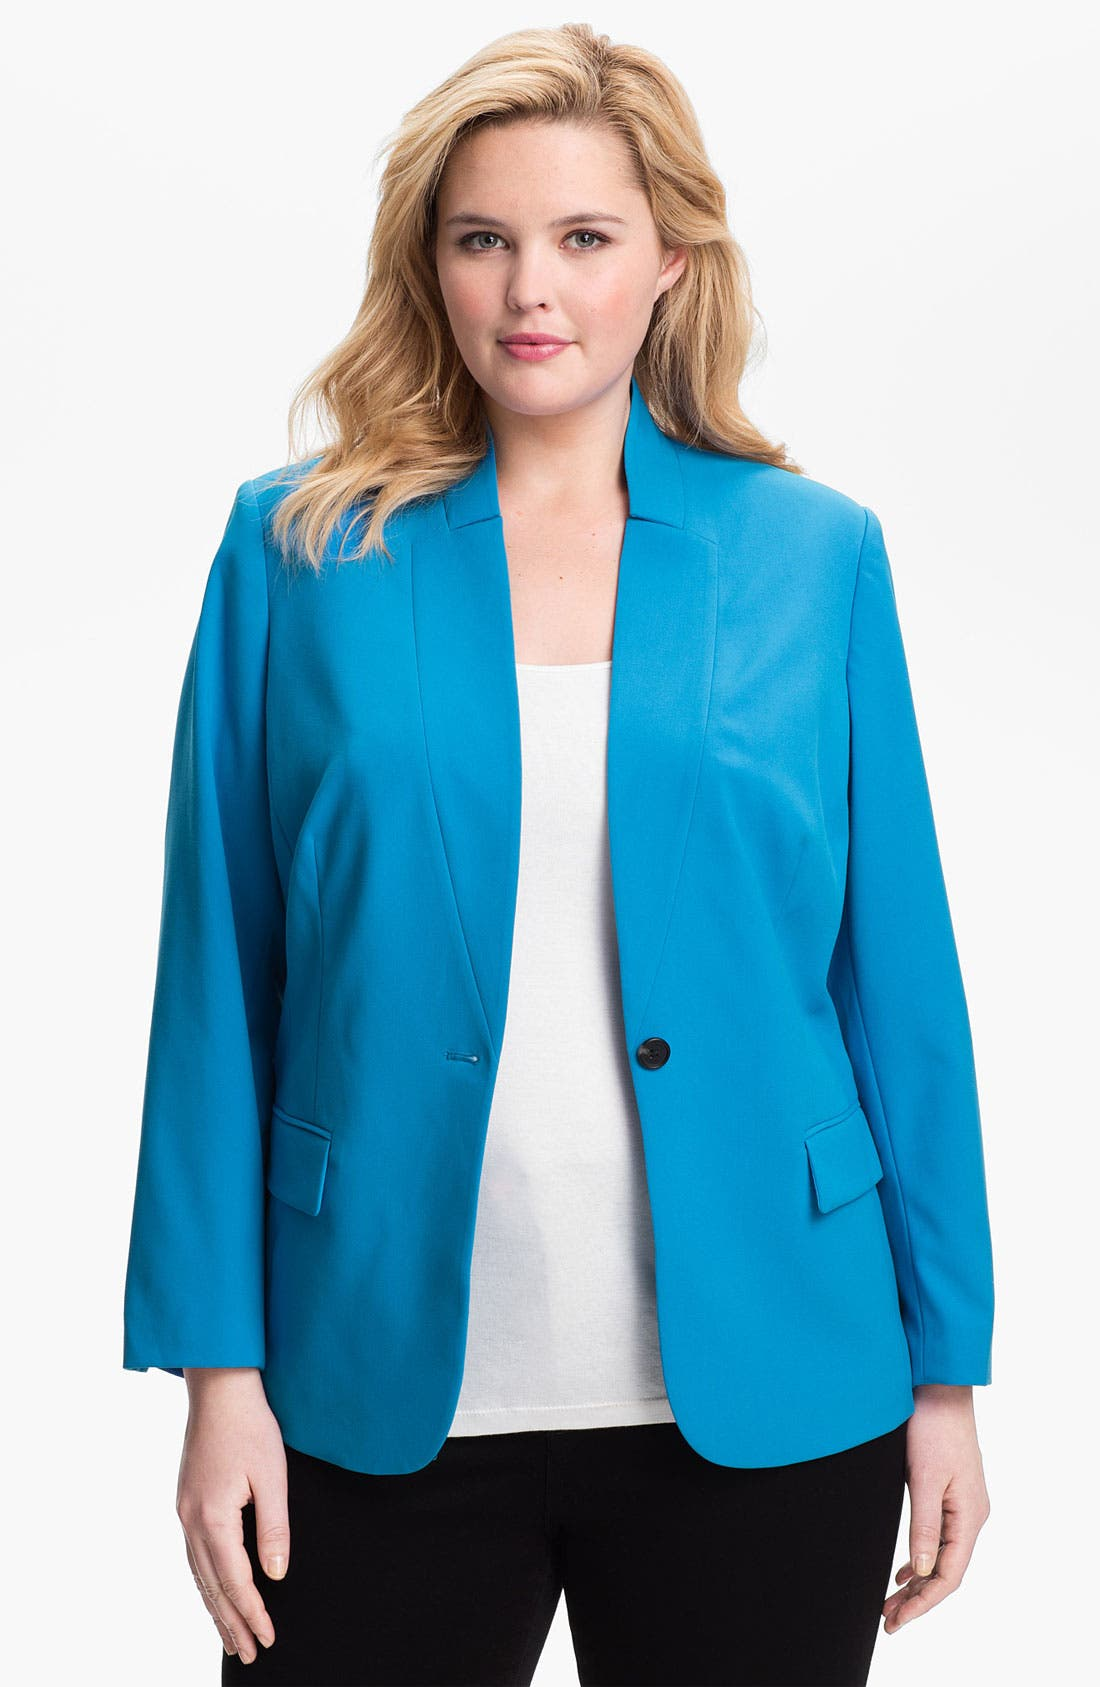 Alternate Image 1 Selected - Vince Camuto Inverted Notch Blazer (Plus Size)